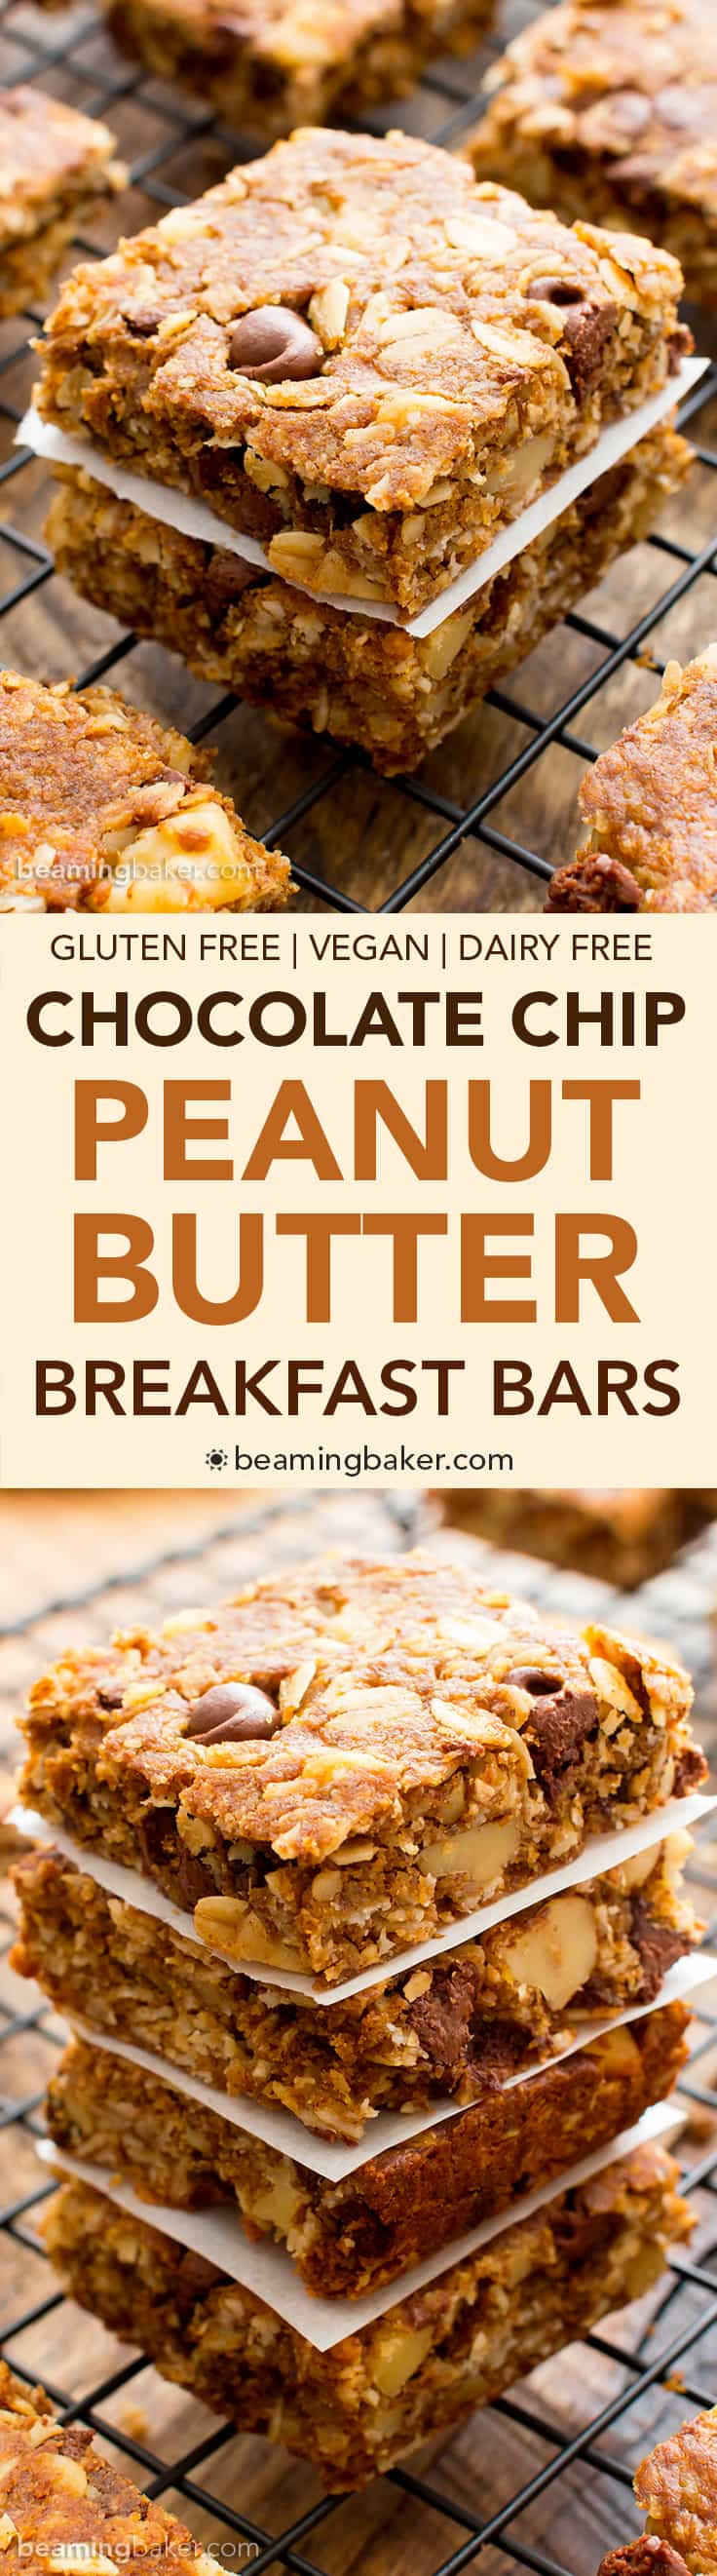 Peanut-Butter-Chocolate-Chip-Oatmeal-Breakfast-Bars-Vegan-Gluten-Free ...